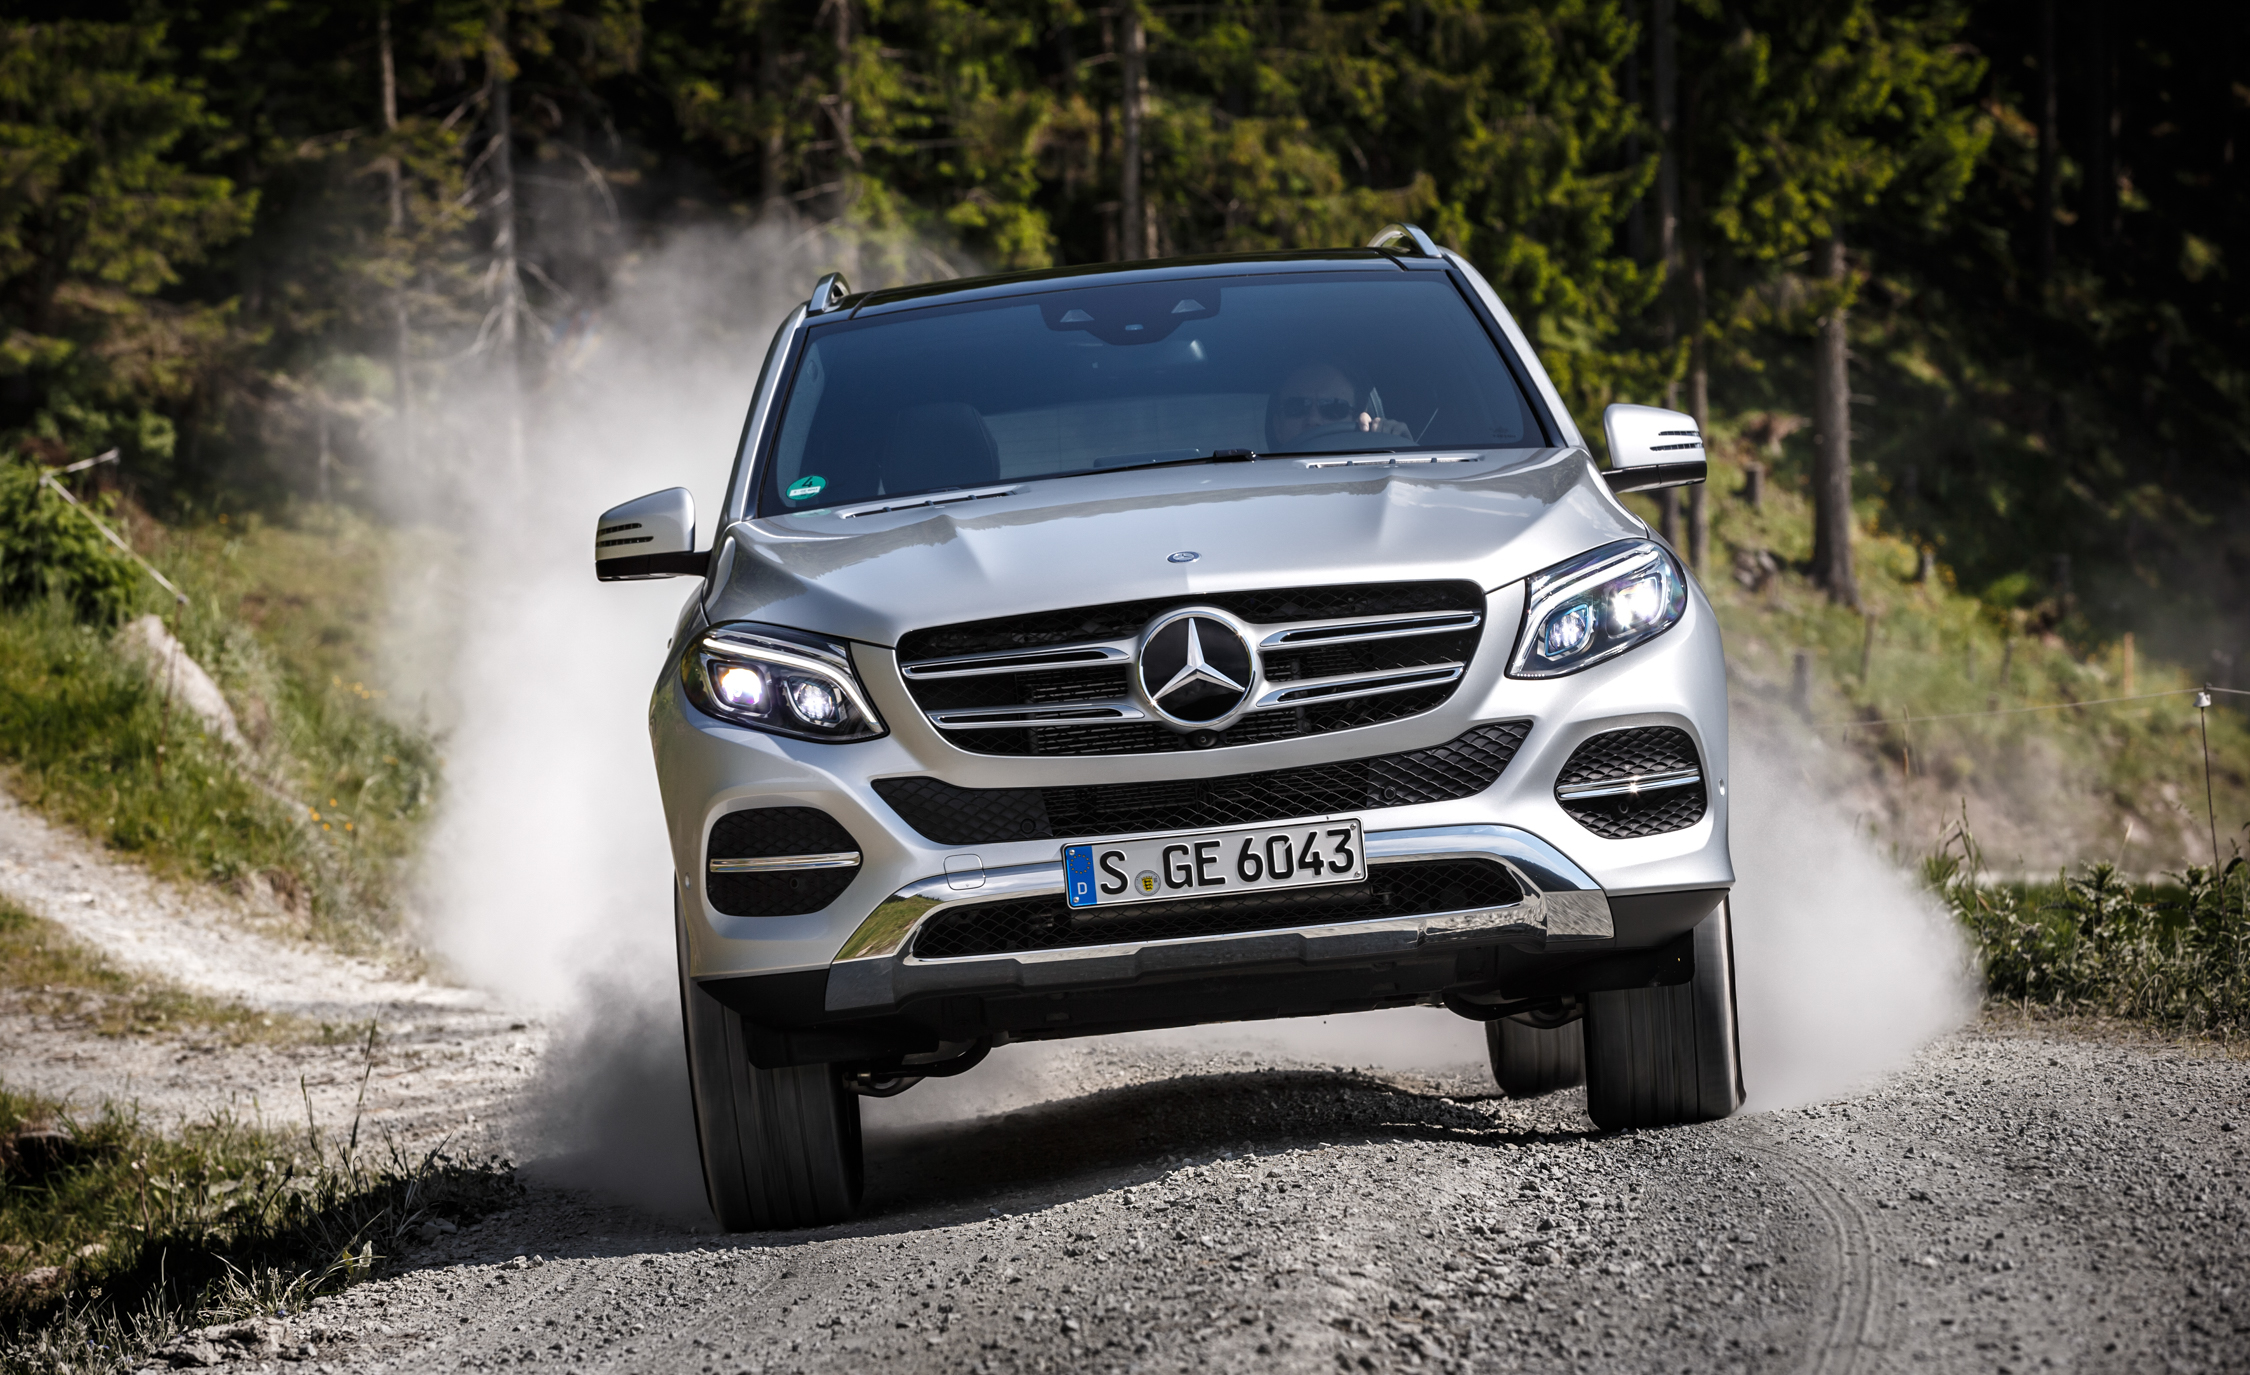 Front View Mercedes-Benz GLE500e 4MATIC 2016